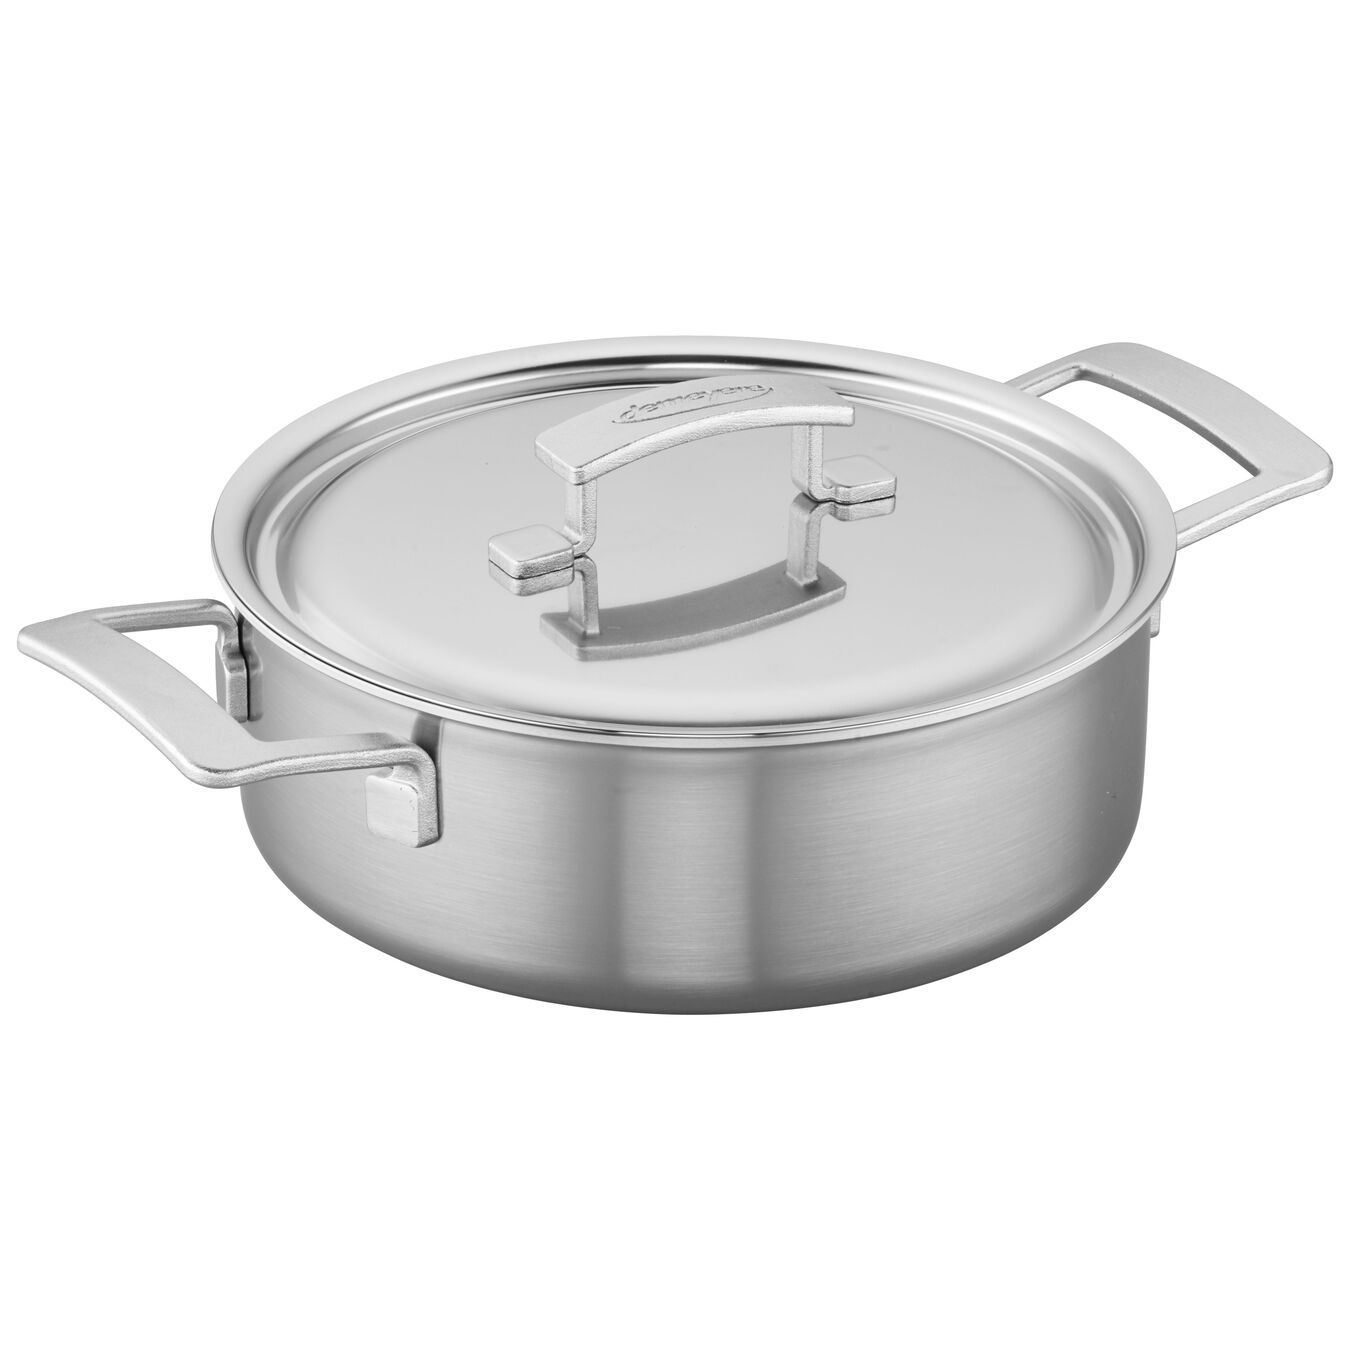 4 qt Deep Sauté Pan with Lid, 18/10 Stainless Steel ,,large 1